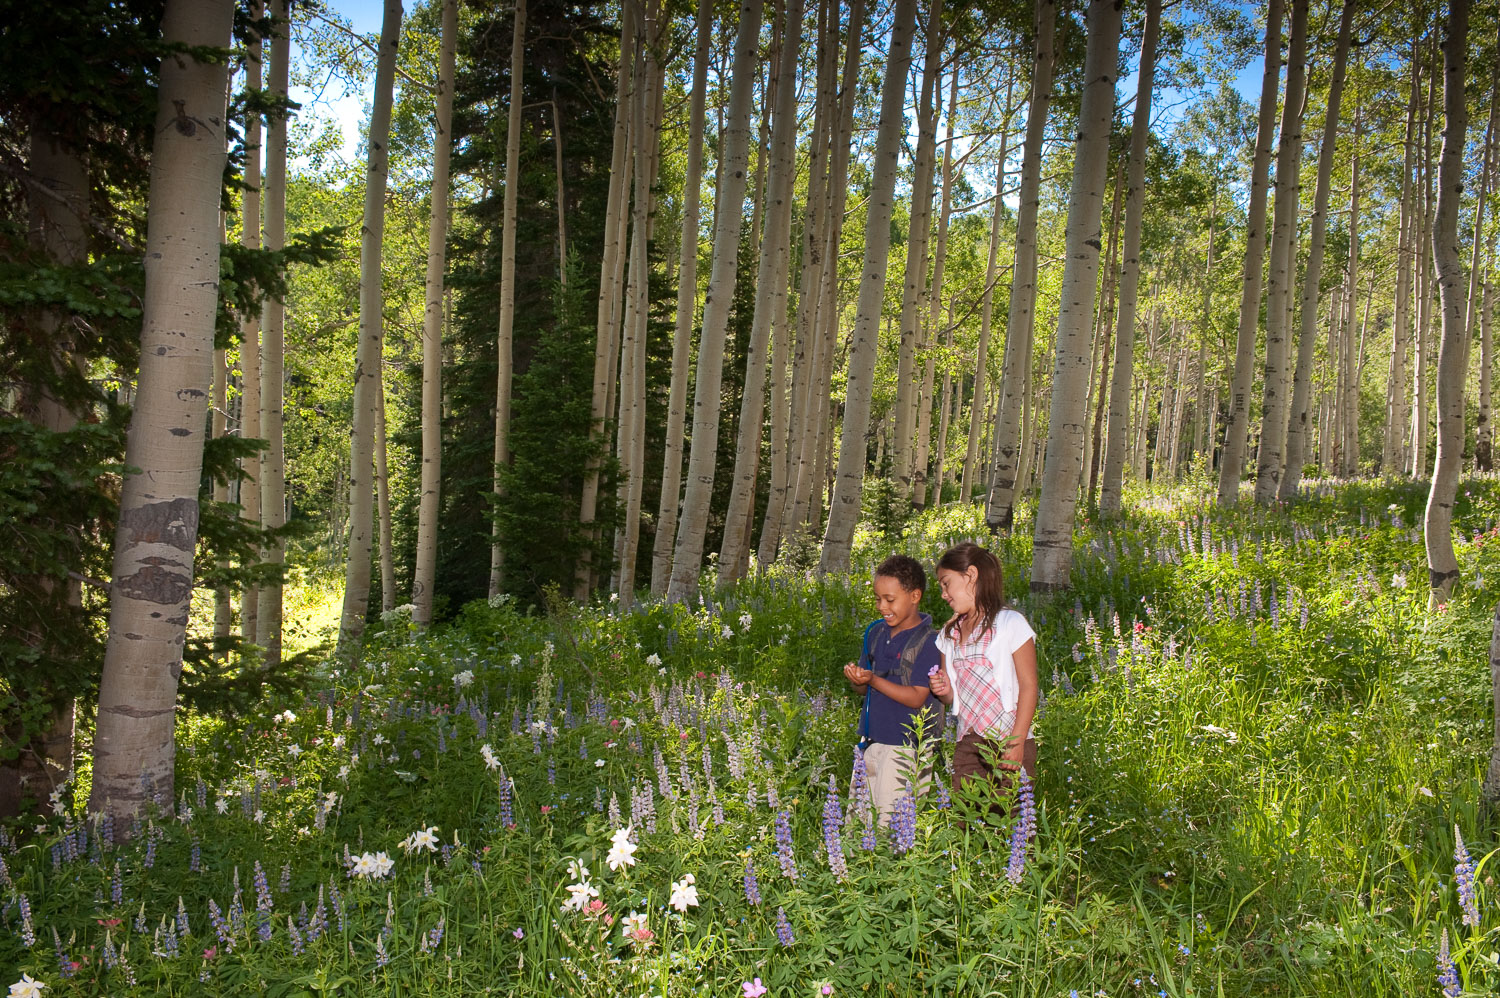 Children Enjoying Nature in grove of Aspens trees and Wildflower